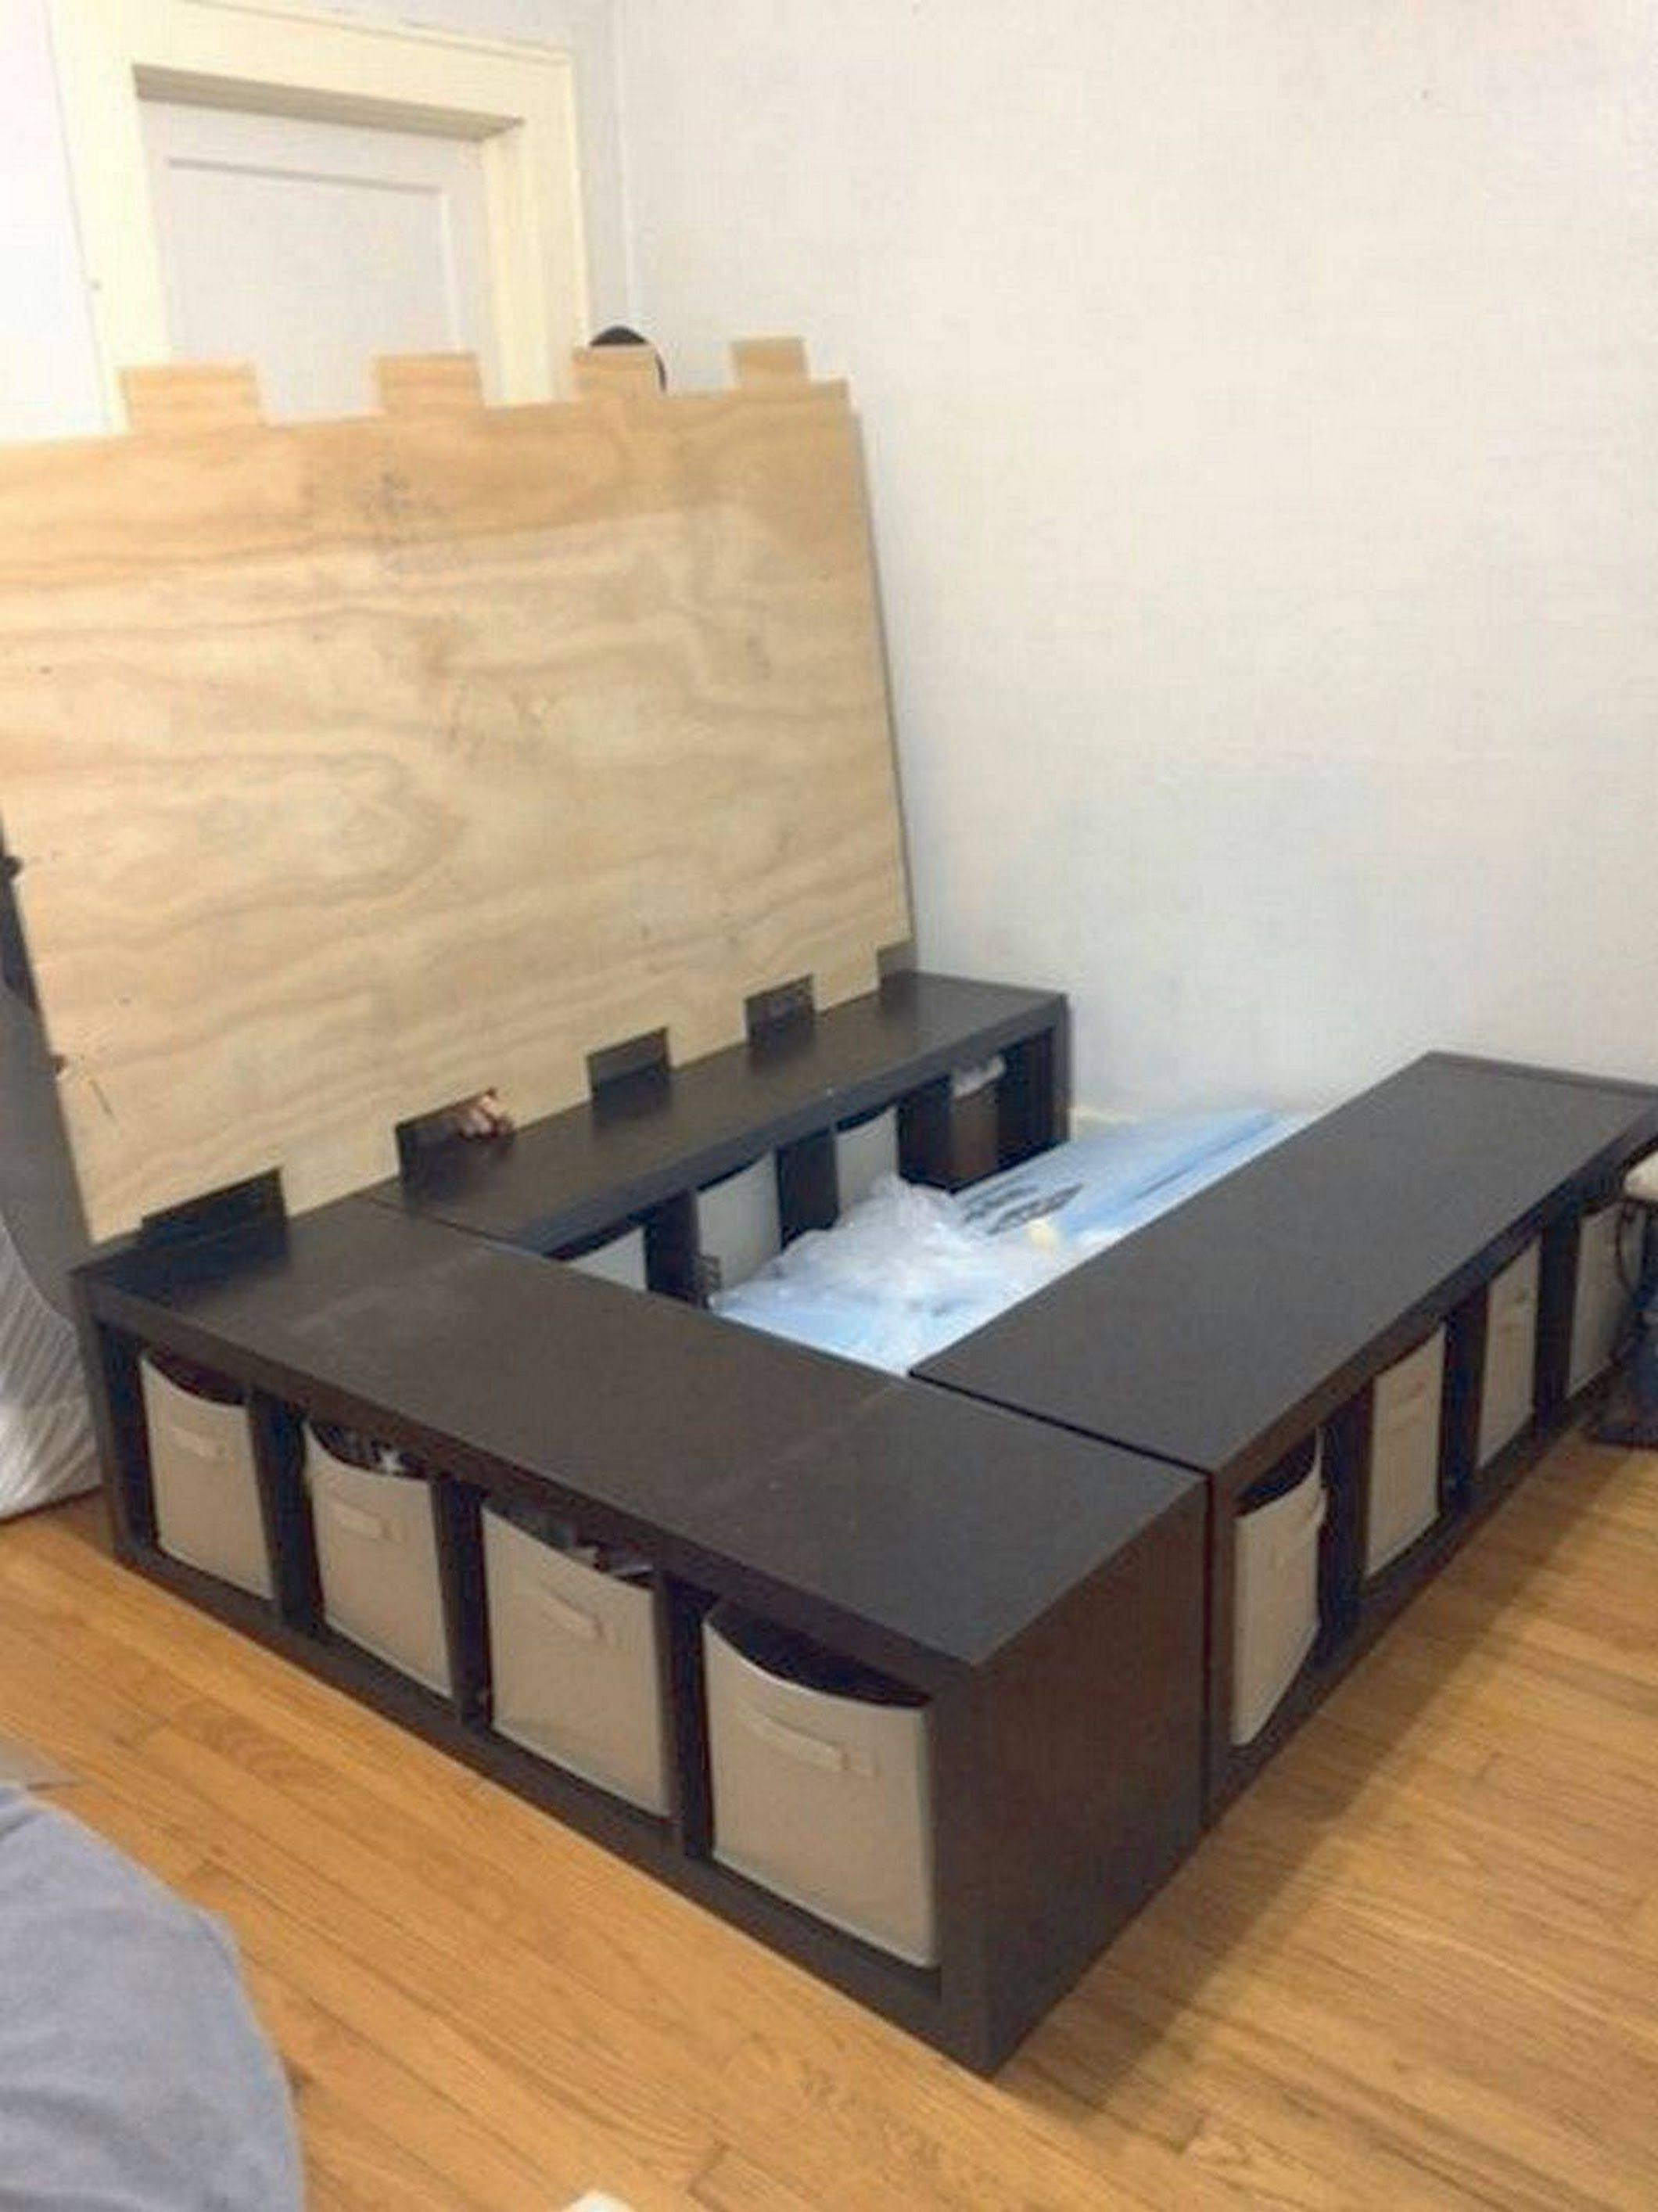 Best ideas about Storage Beds DIY . Save or Pin DIY Storage Bed place three 4 cube storage shelves in a u Now.